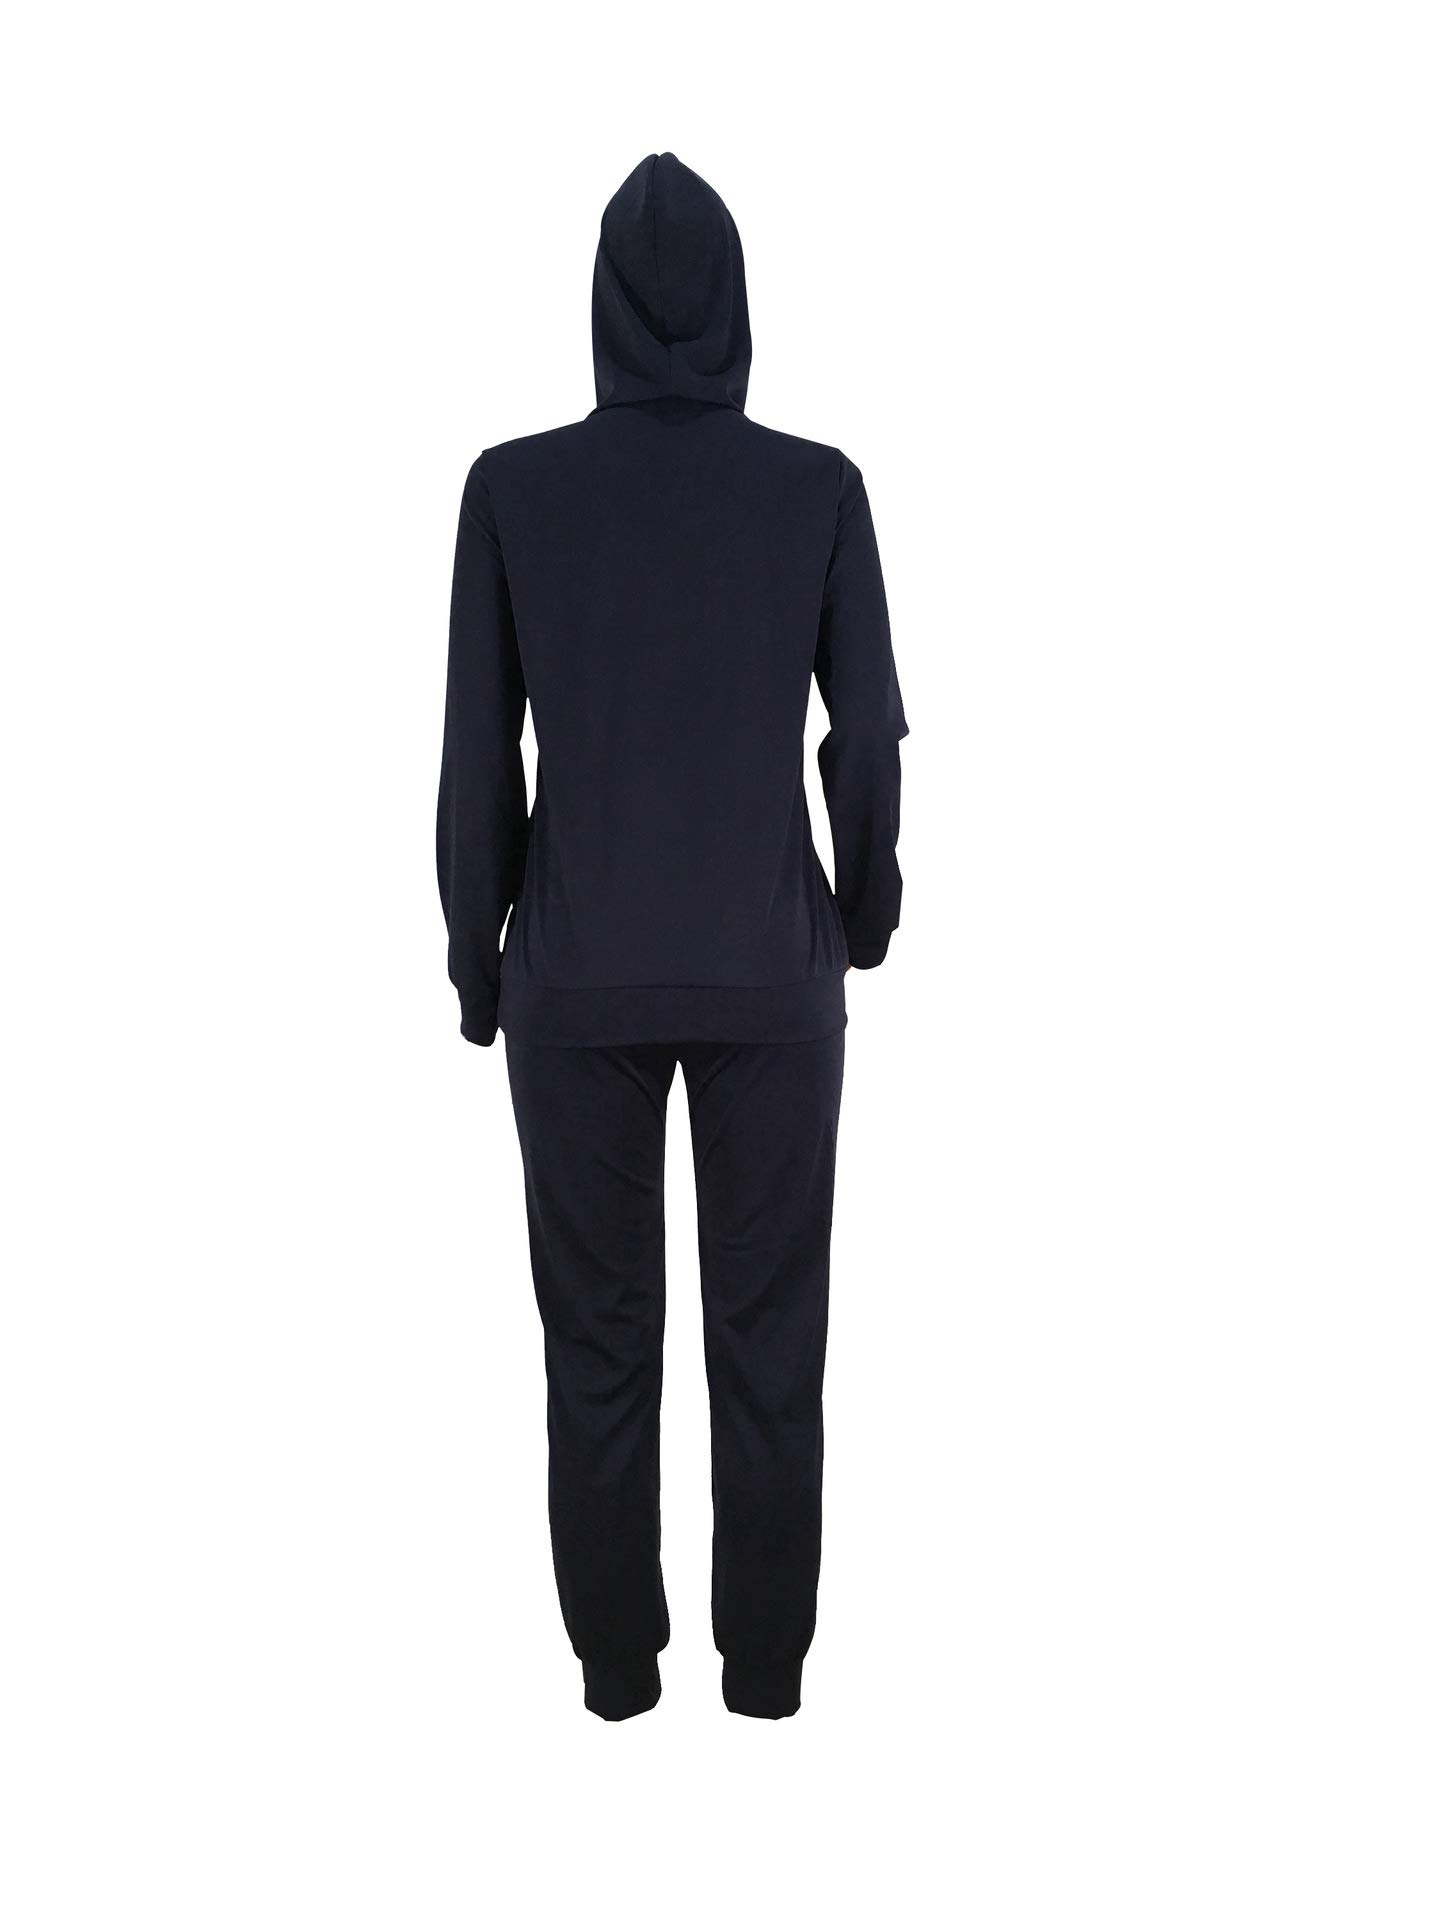 2 Piece Outfits for Women Ripped Hole Hoodies Pullover Tops and Sweatpants Sports Tracksuit Set Plus Size Dark Blue X-Large